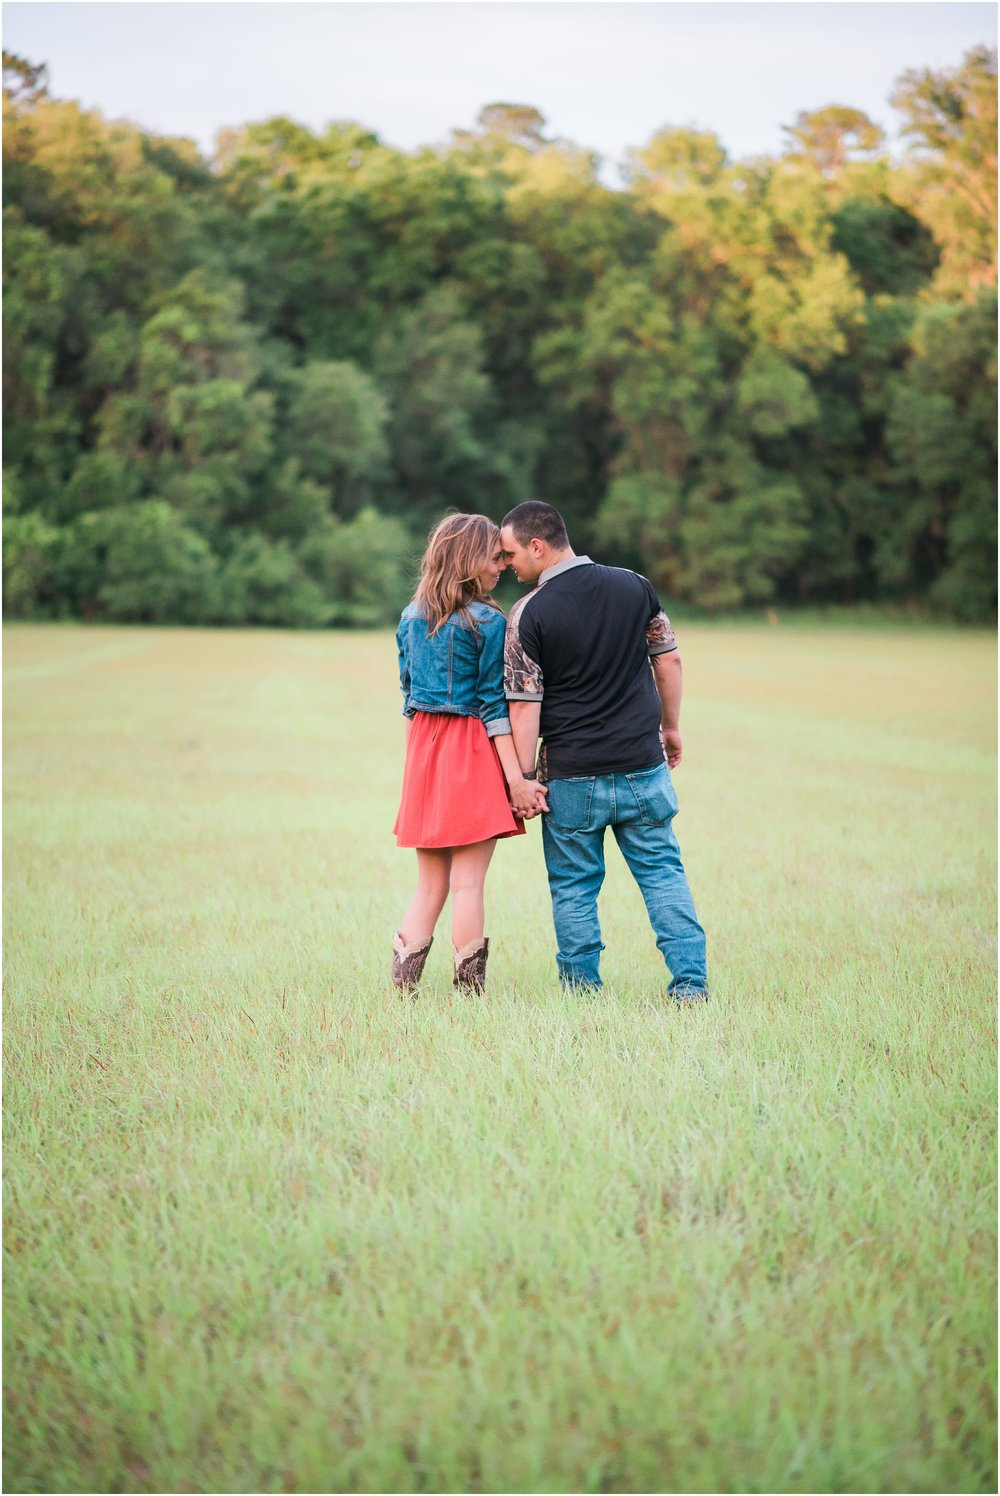 Haley & Kyle Engagement Photoshoot in J.R Alford Greenway, Tallahassee FL_0020.jpg